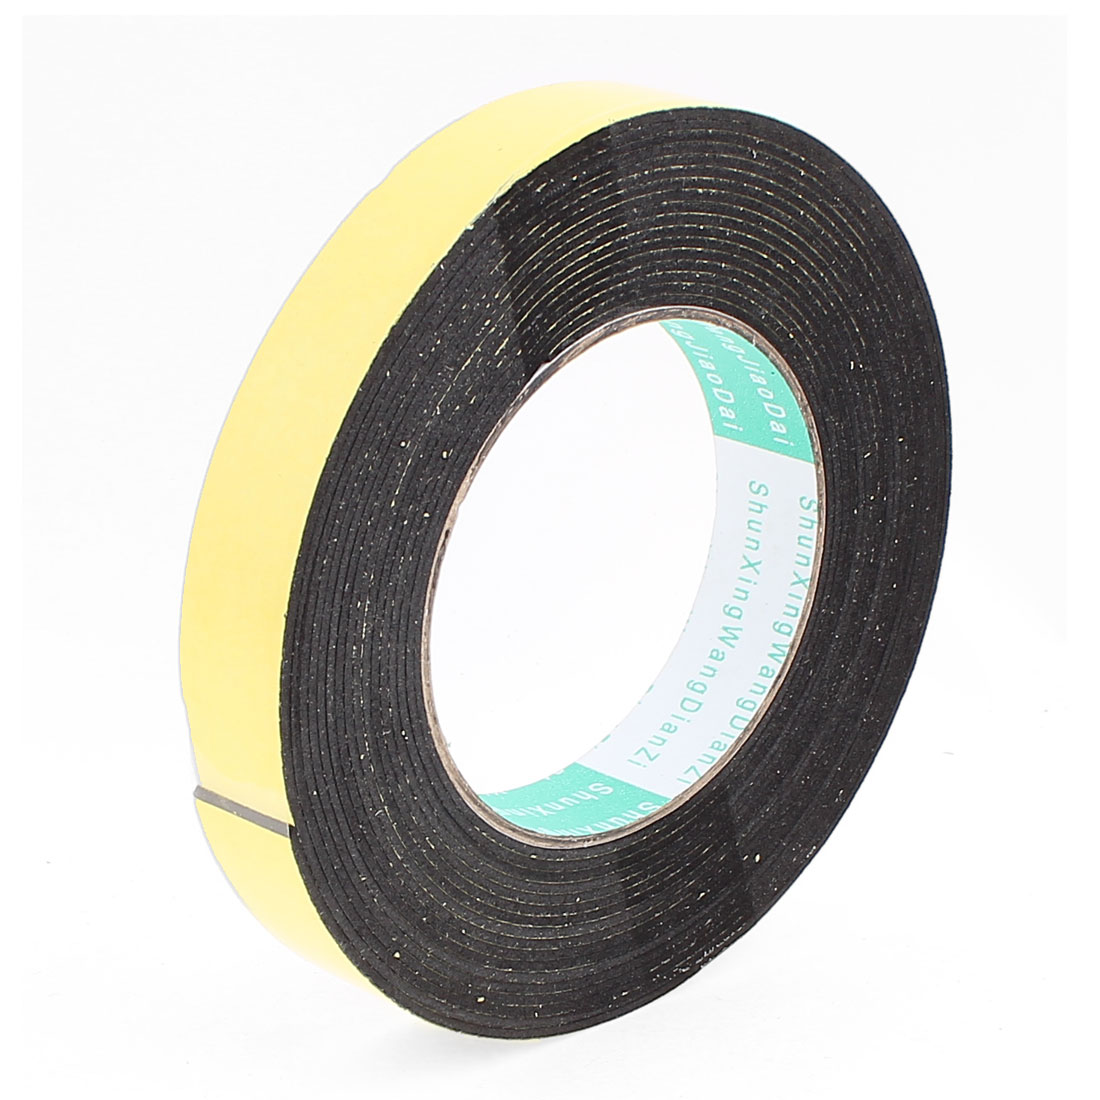 5 Meters 20mm x 1.5mm Single Side Adhesive EVA Foam Sealing Tap